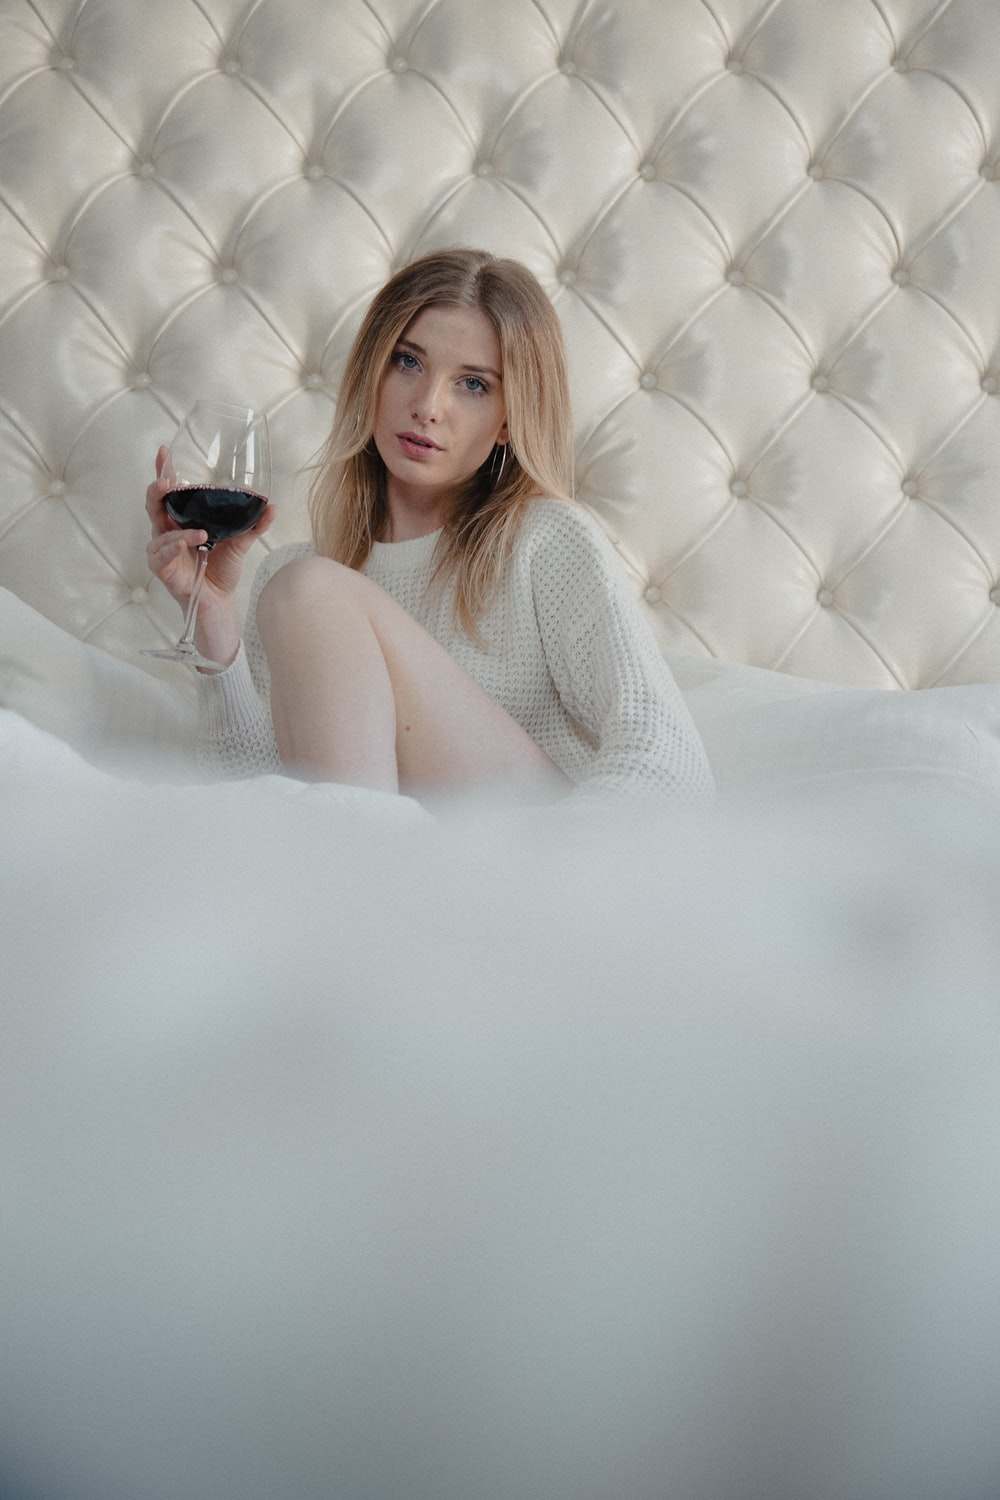 woman in white knit tank top lying on white bed